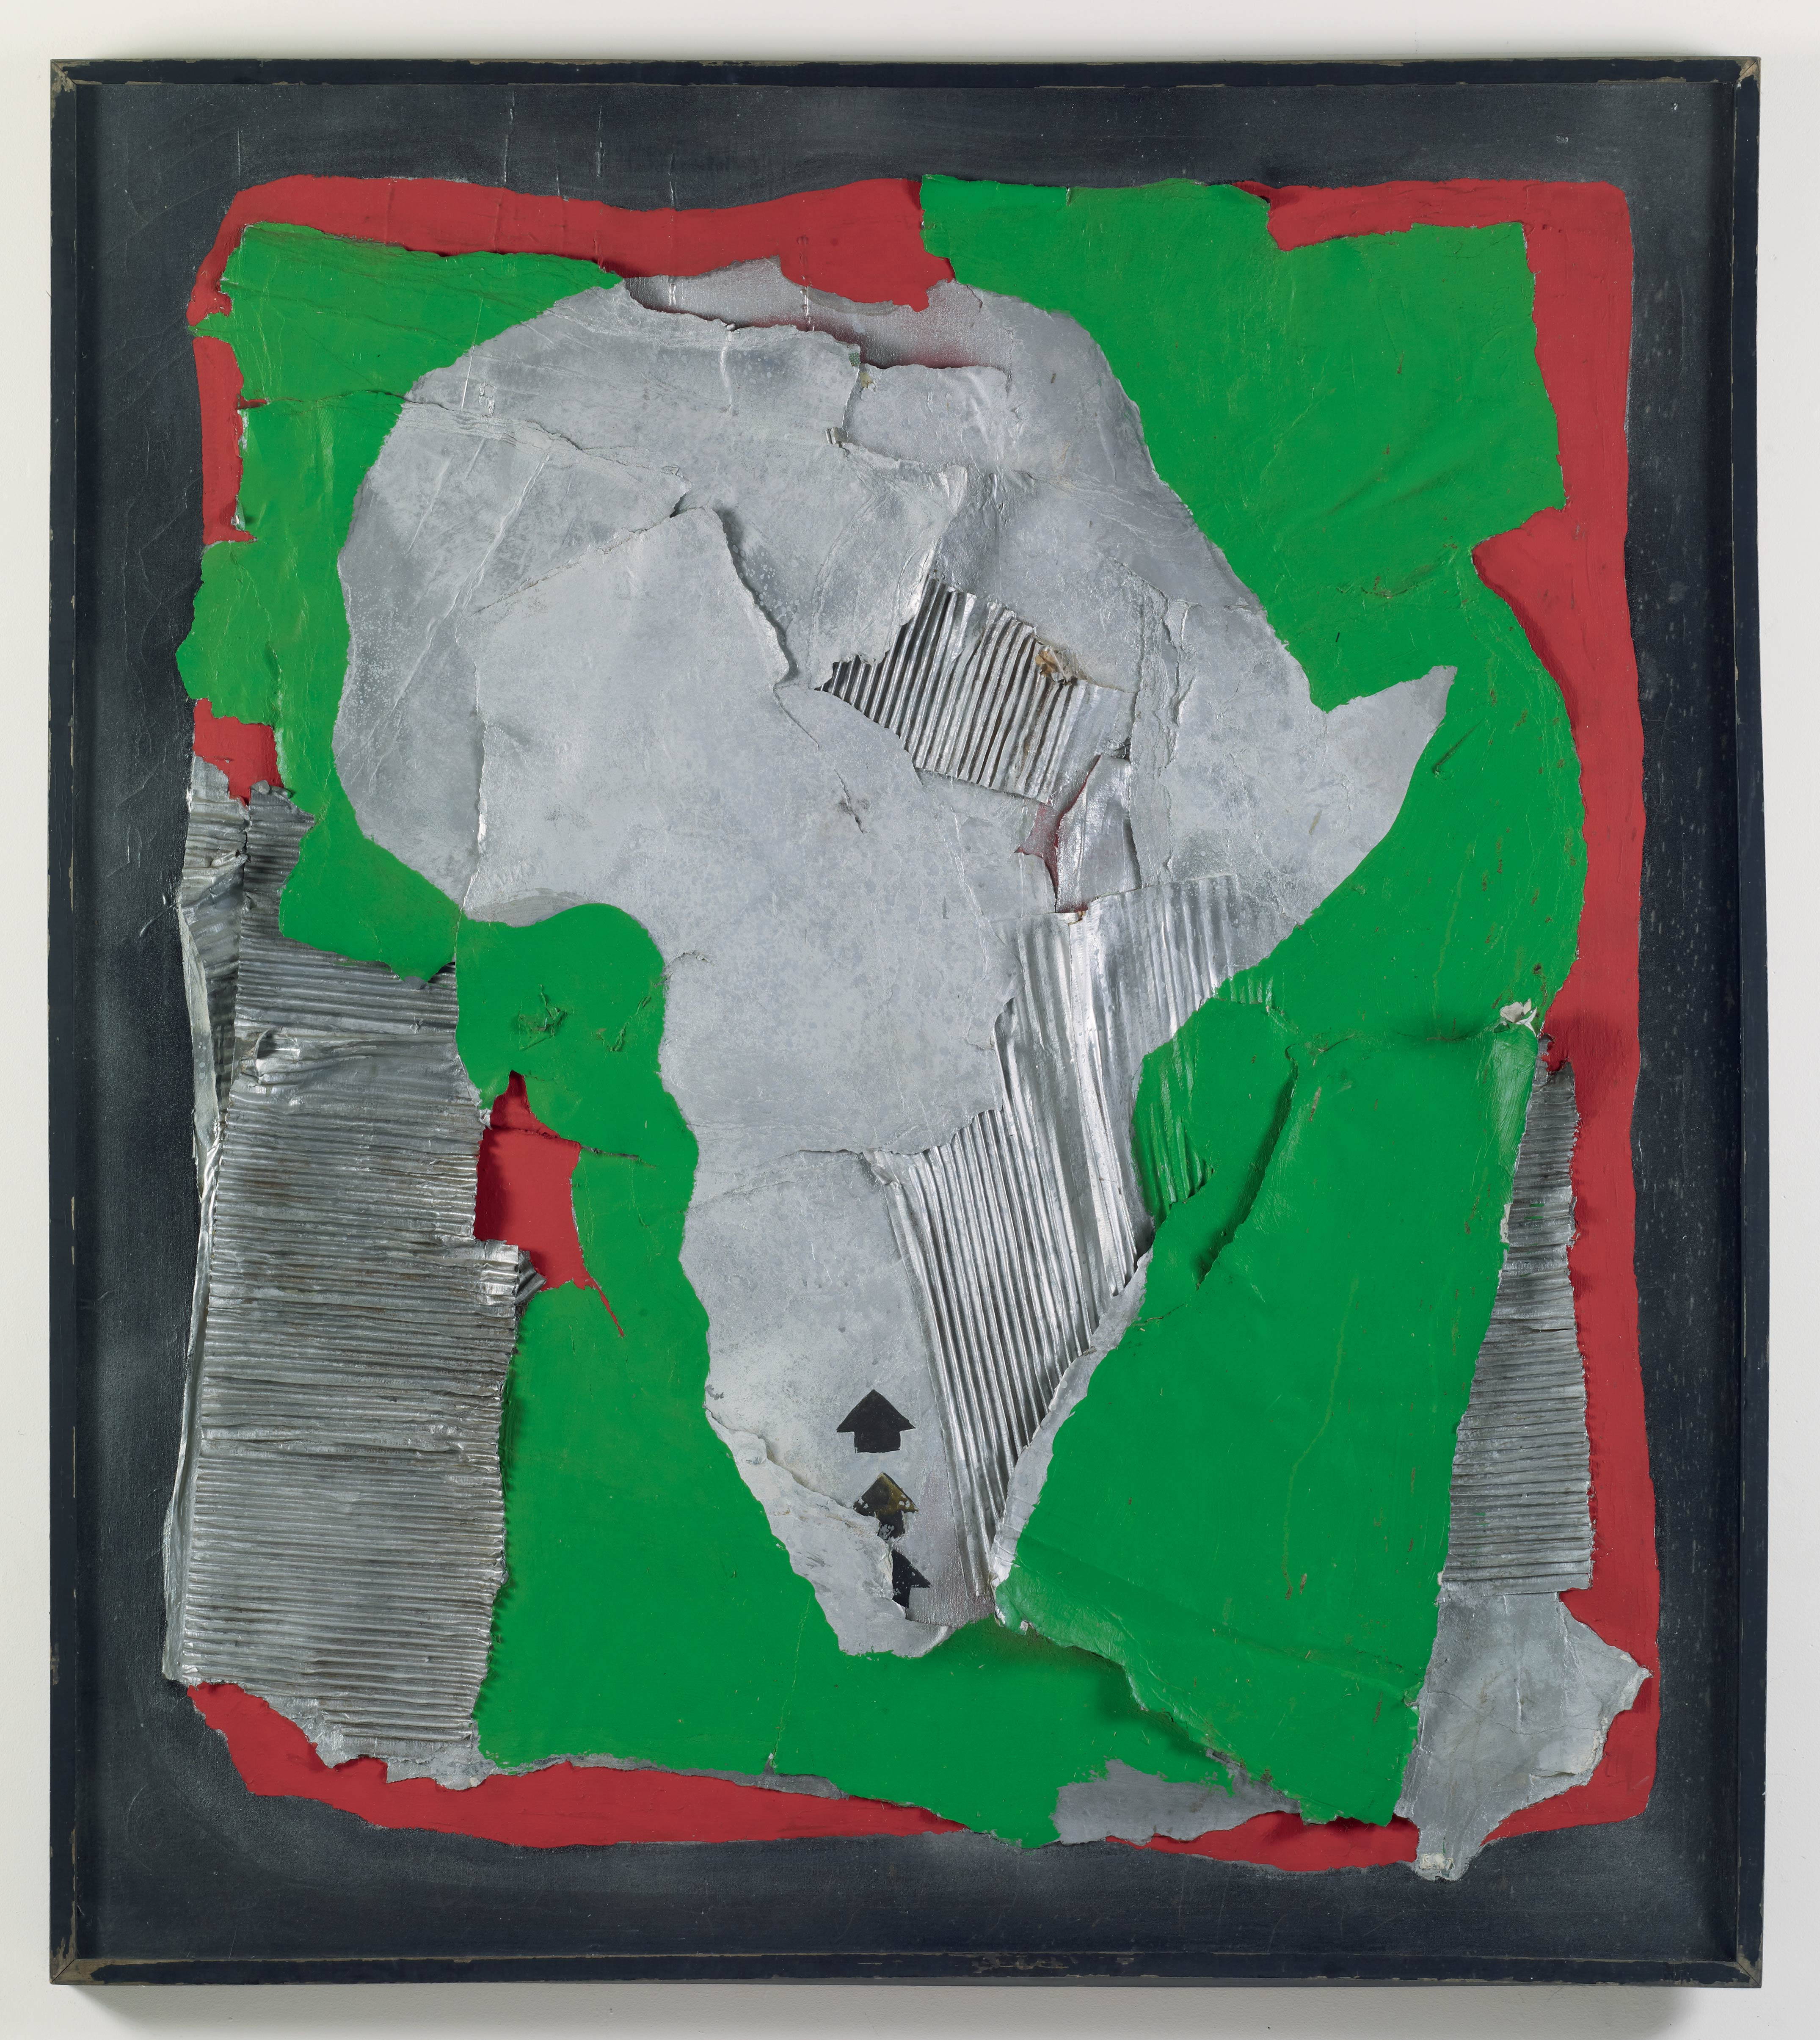 Pan African Direction III, by Alonzo Davis, 1973